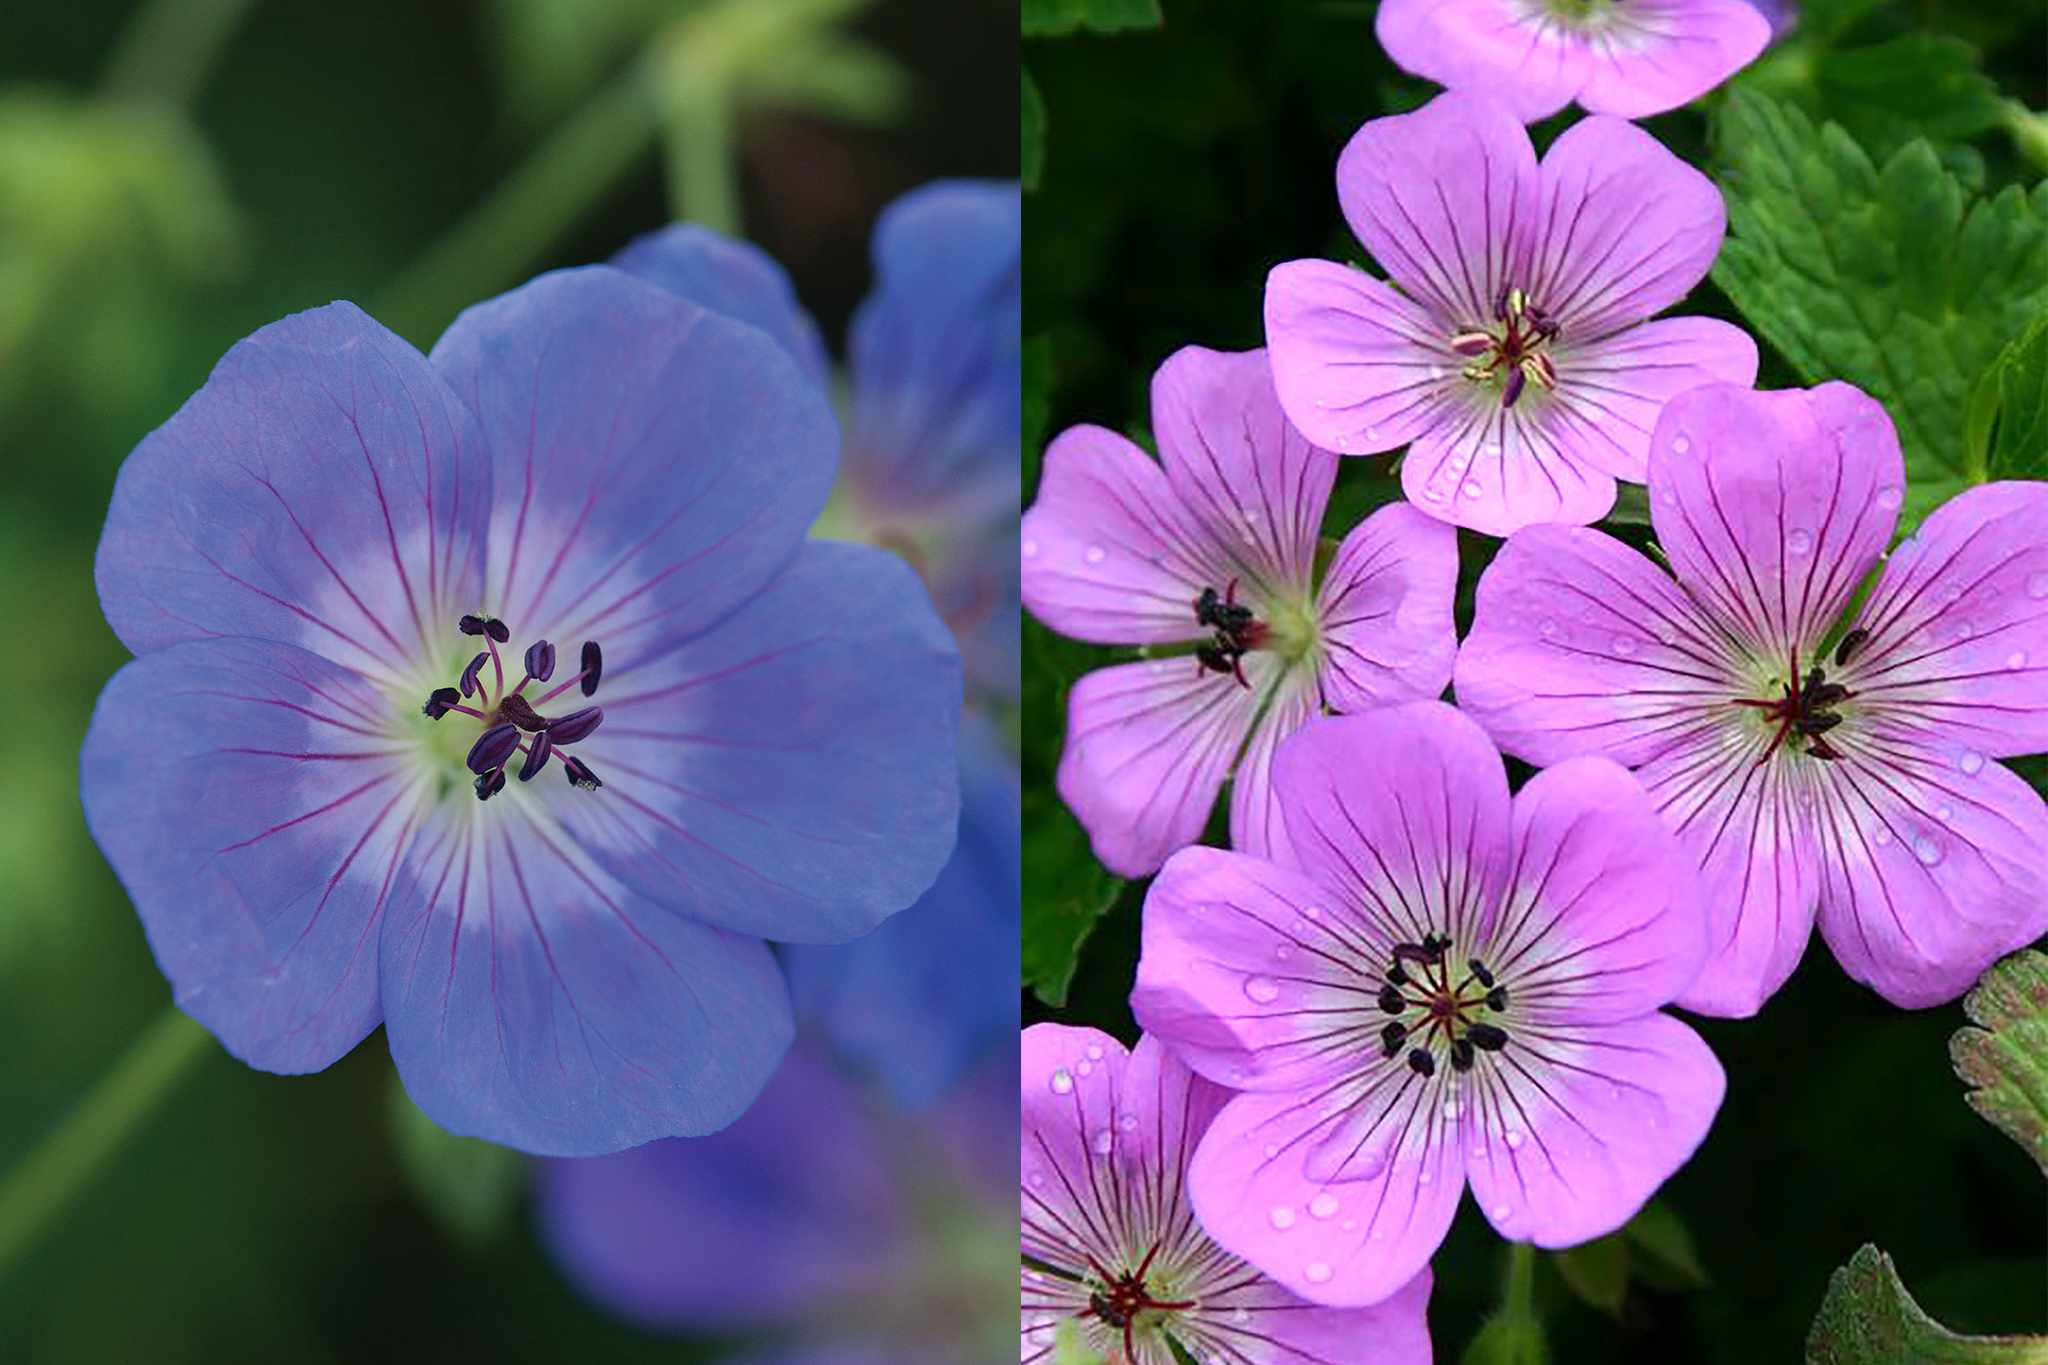 Geraniums 'Rozanne' and 'Bloomtime' from Thompson & Morgan